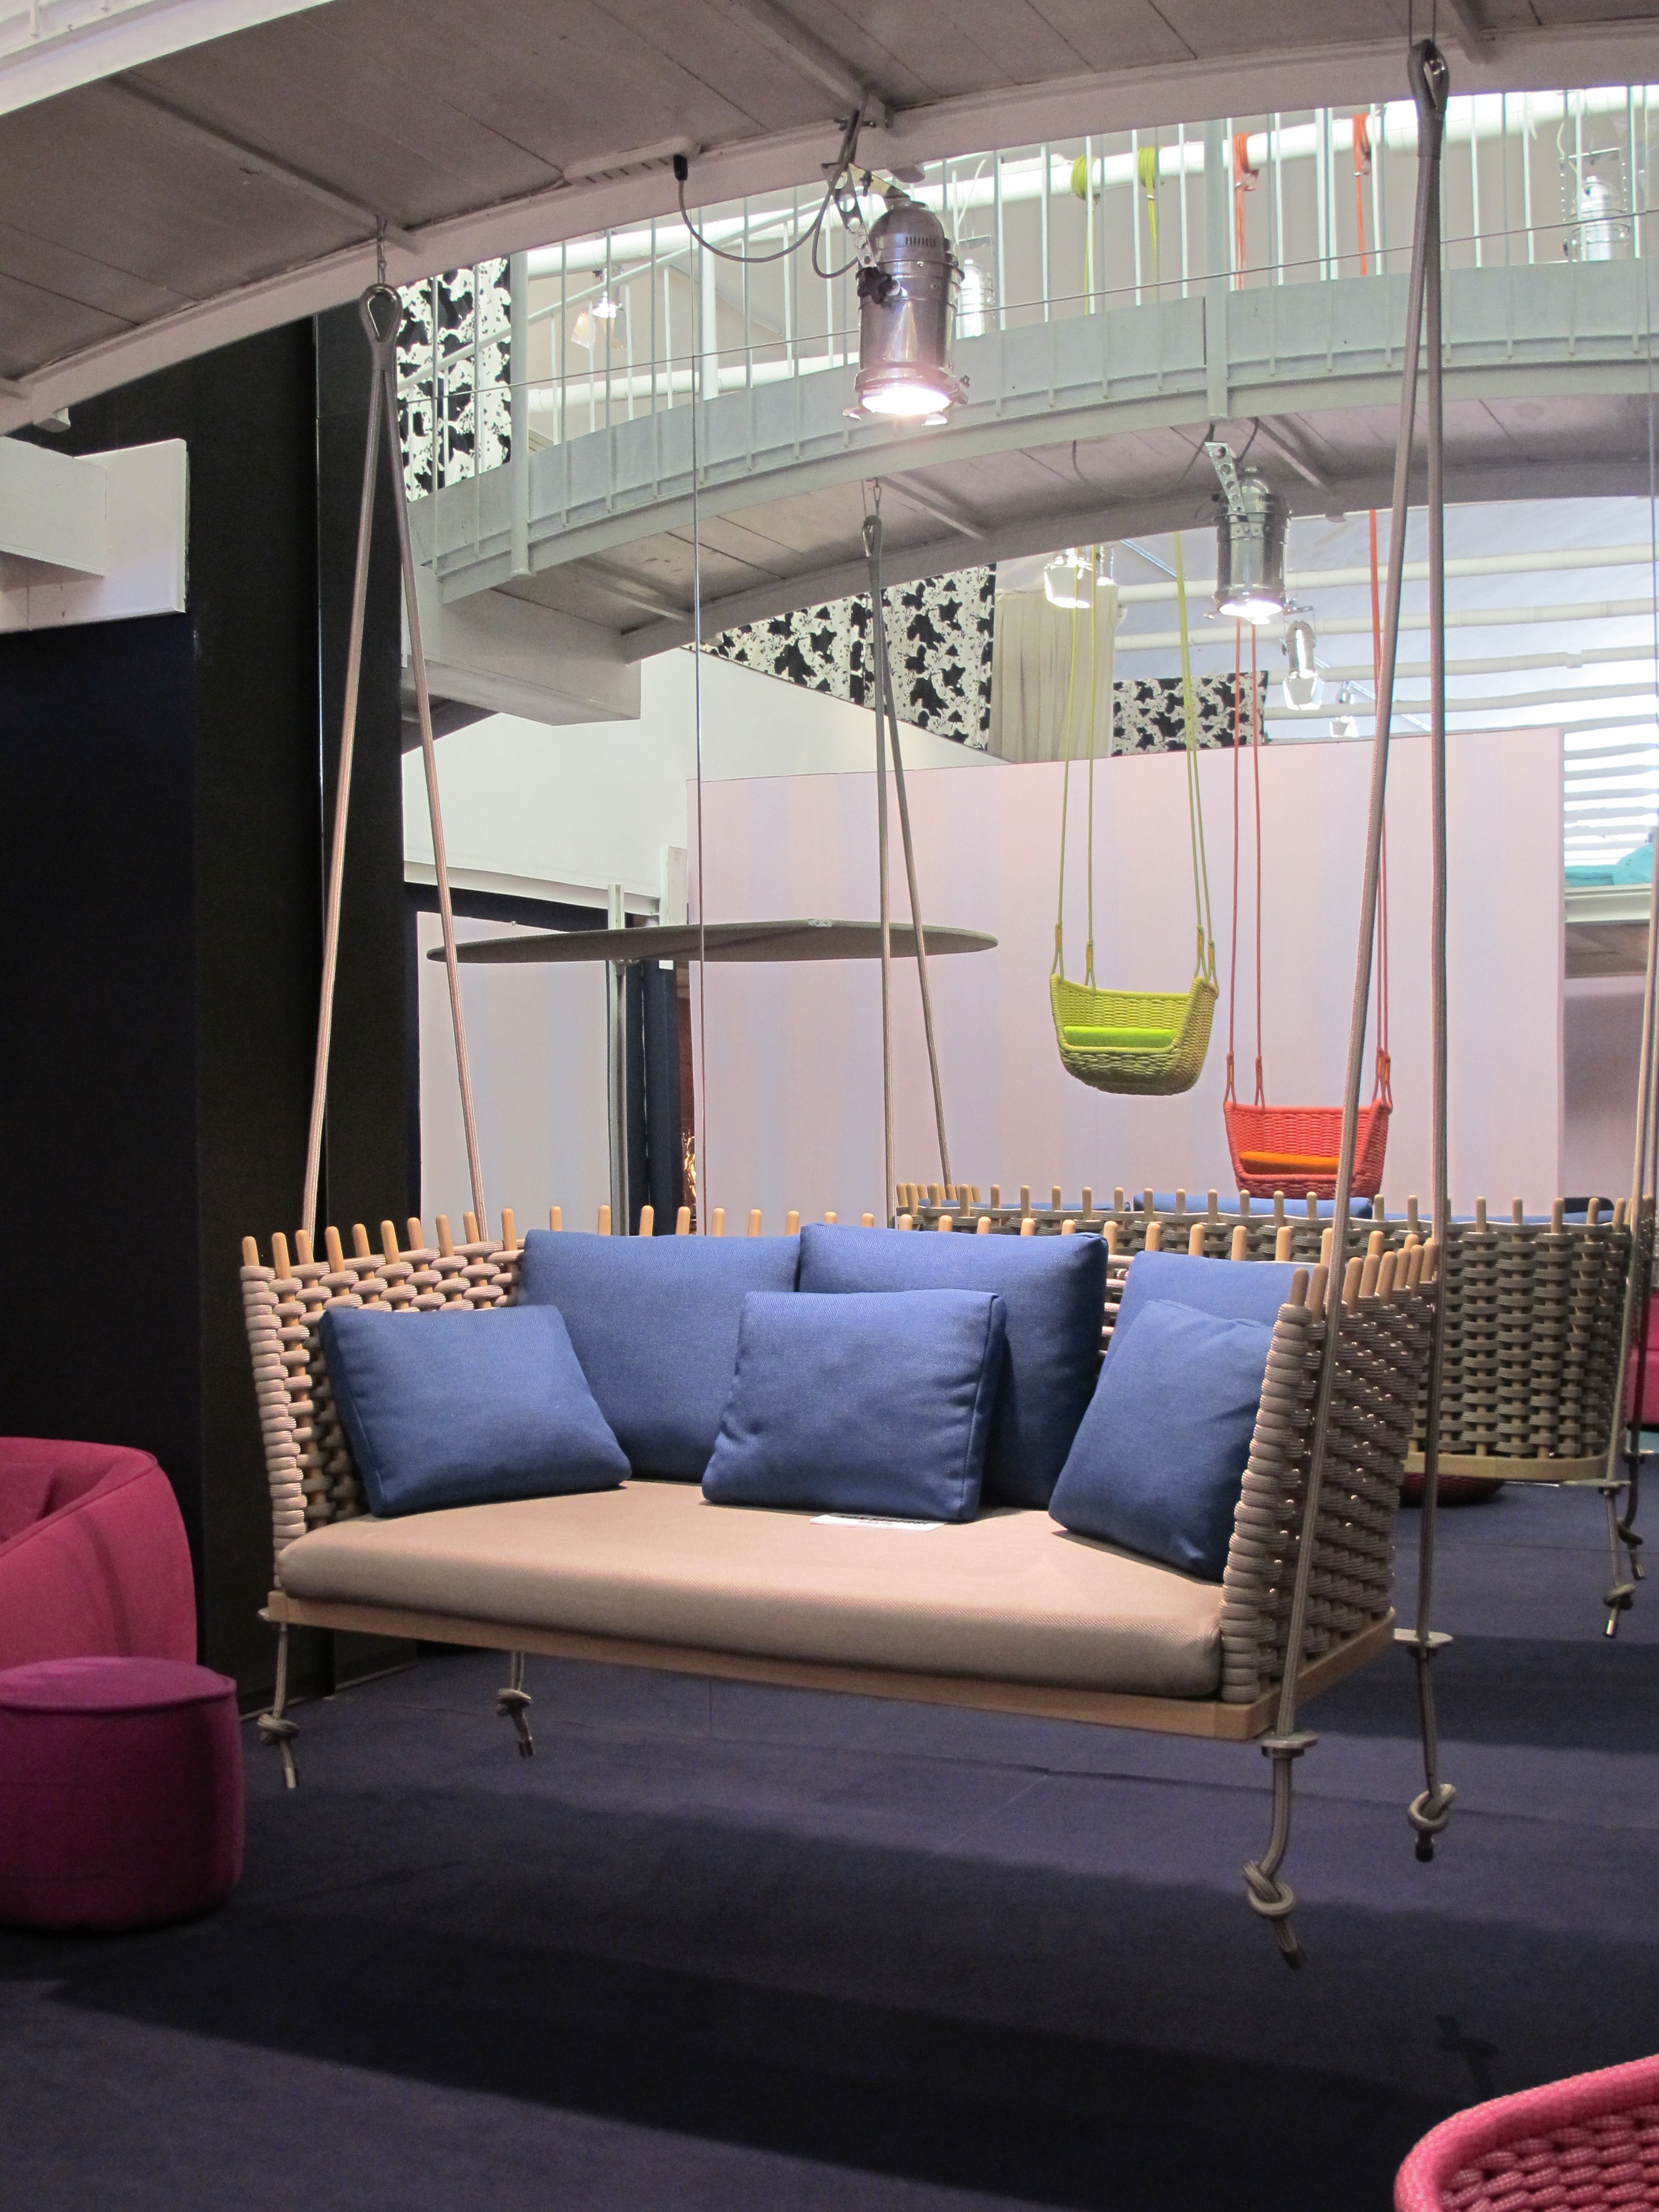 Swinging summer the picnic guest for Paola lenti